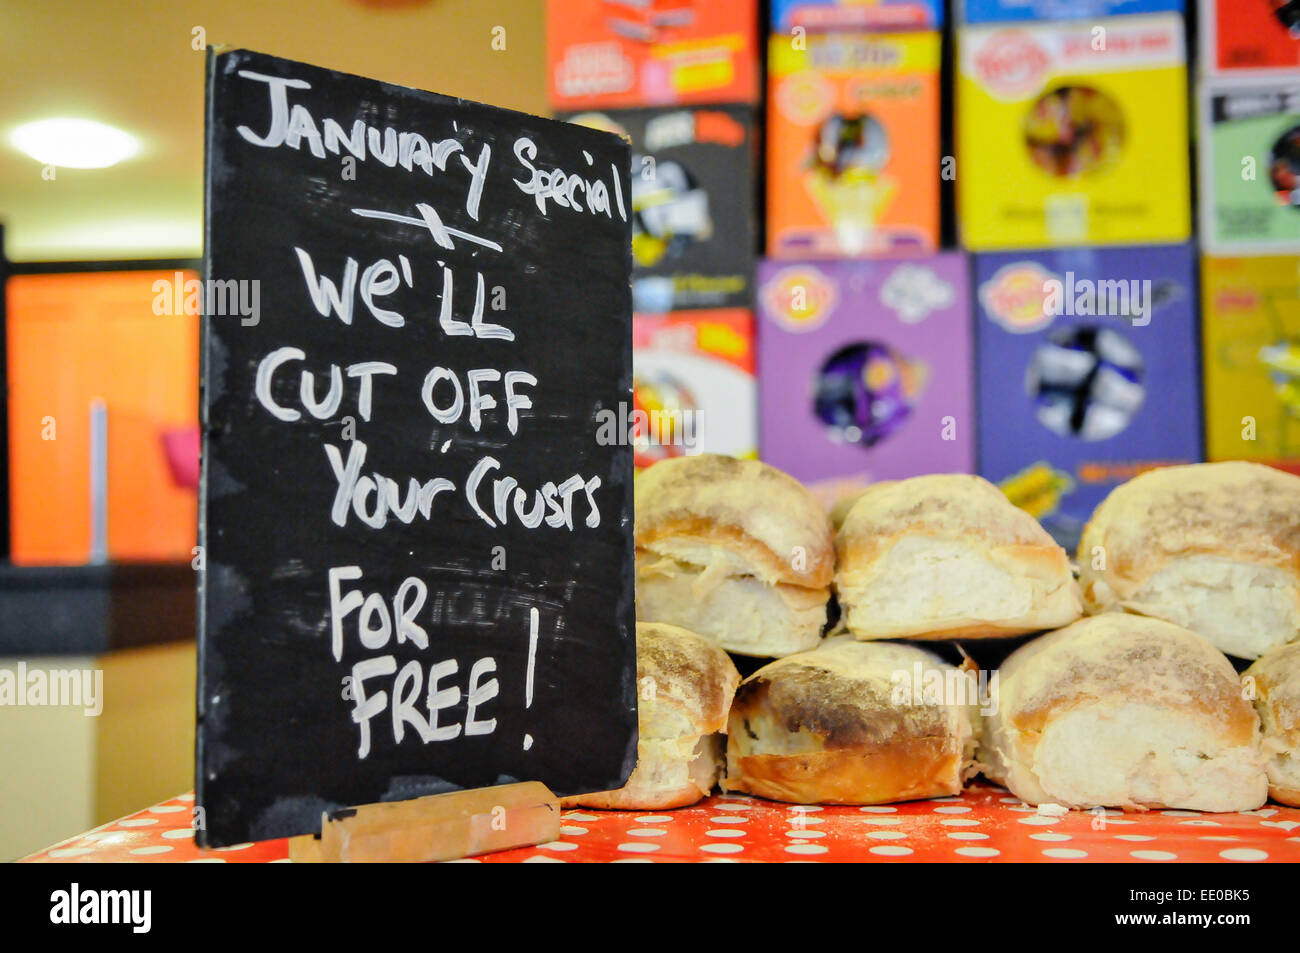 Belfast, Northern Ireland. 12th January, 2015. Staff offer to 'cut off your crusts' during the opening of - Stock Image